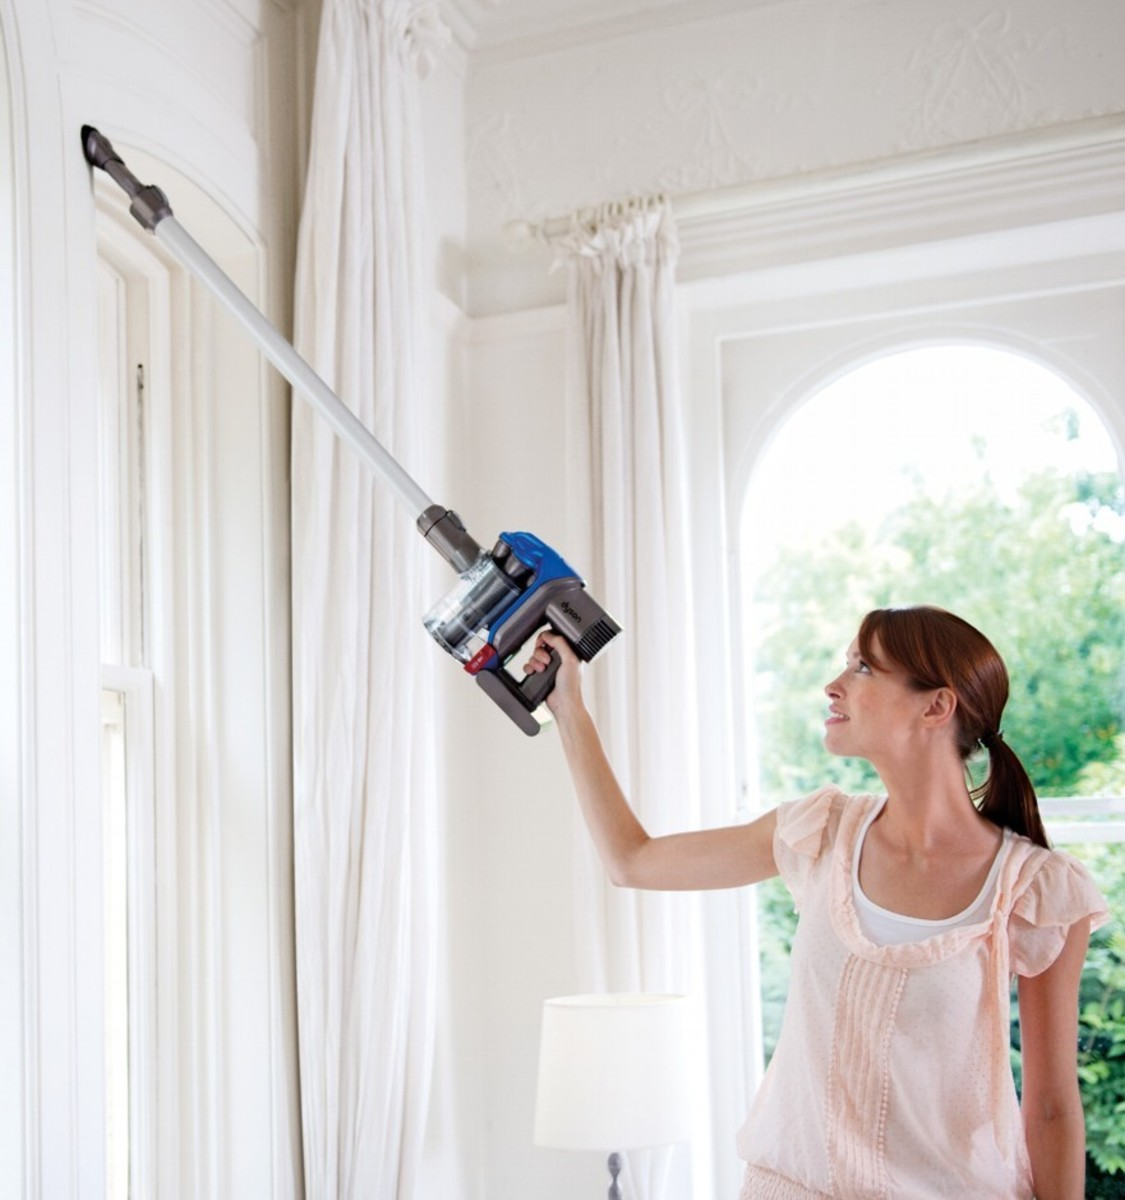 Dyson DC35 is great for removing cobwebs at ceiling height